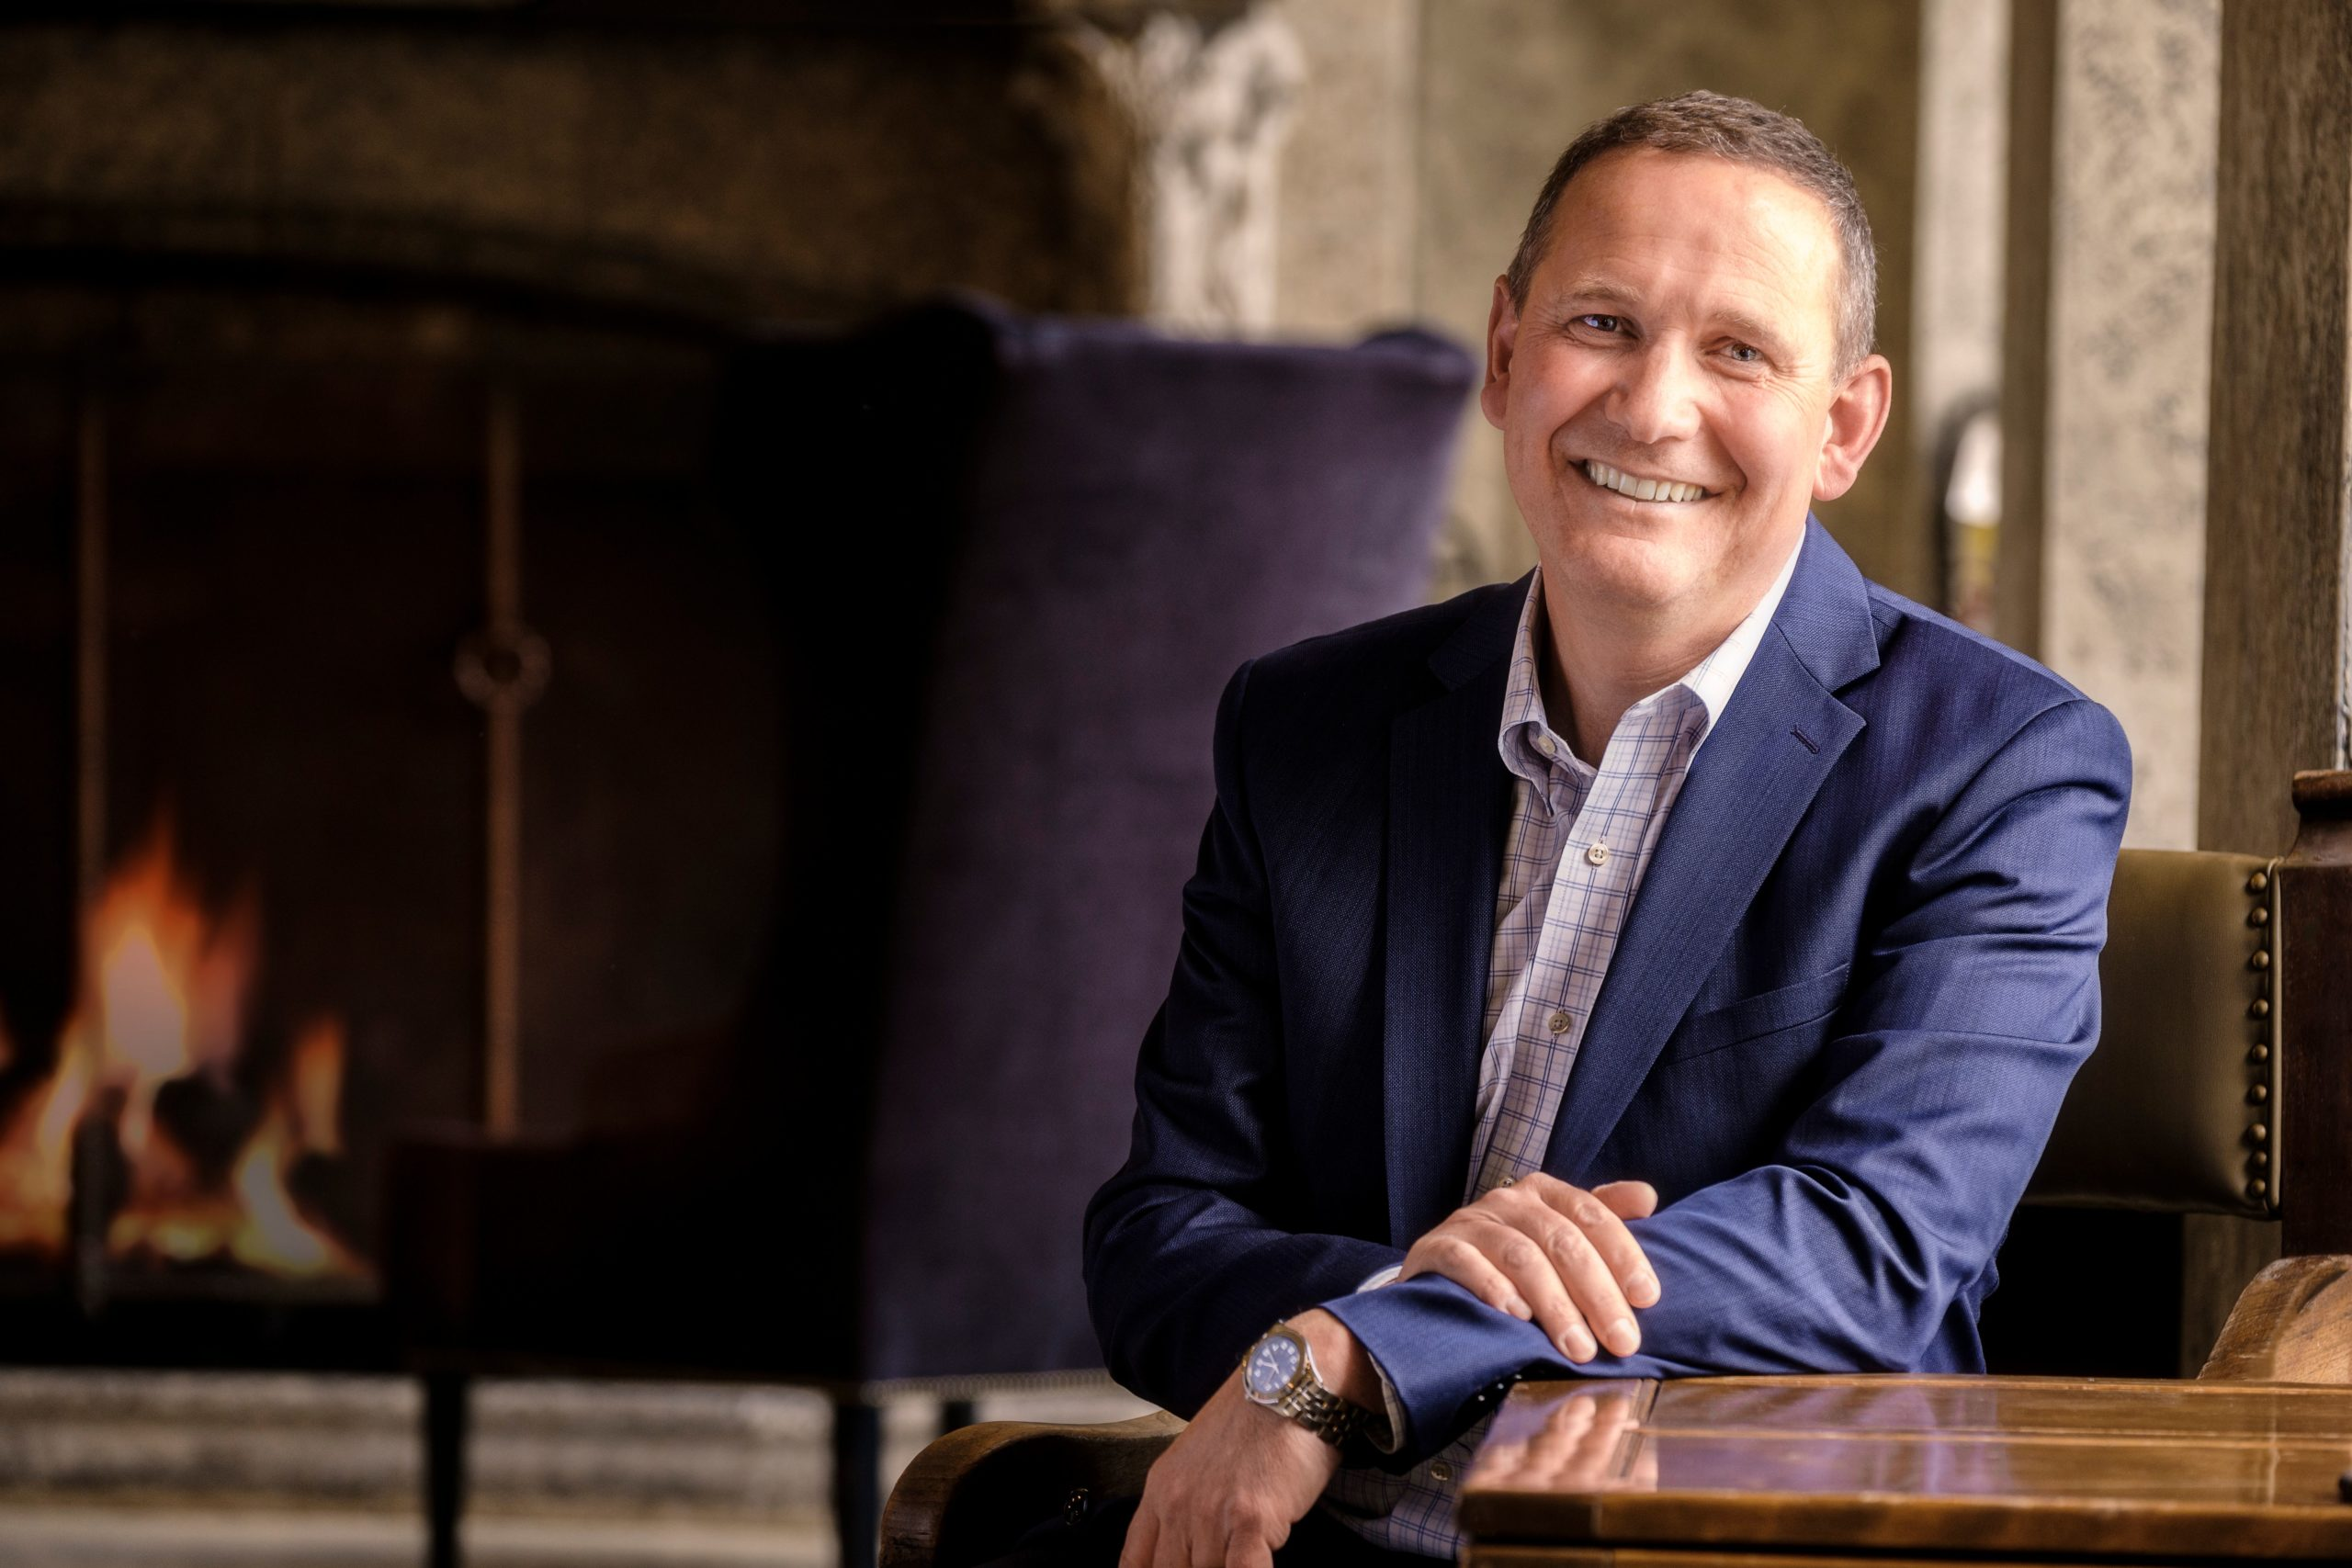 FAIRMONT HOTELS & RESORTS APPOINTS NEW REGIONAL VICE-PRESIDENT, CANADA'S WESTERN MOUNTAIN REGION